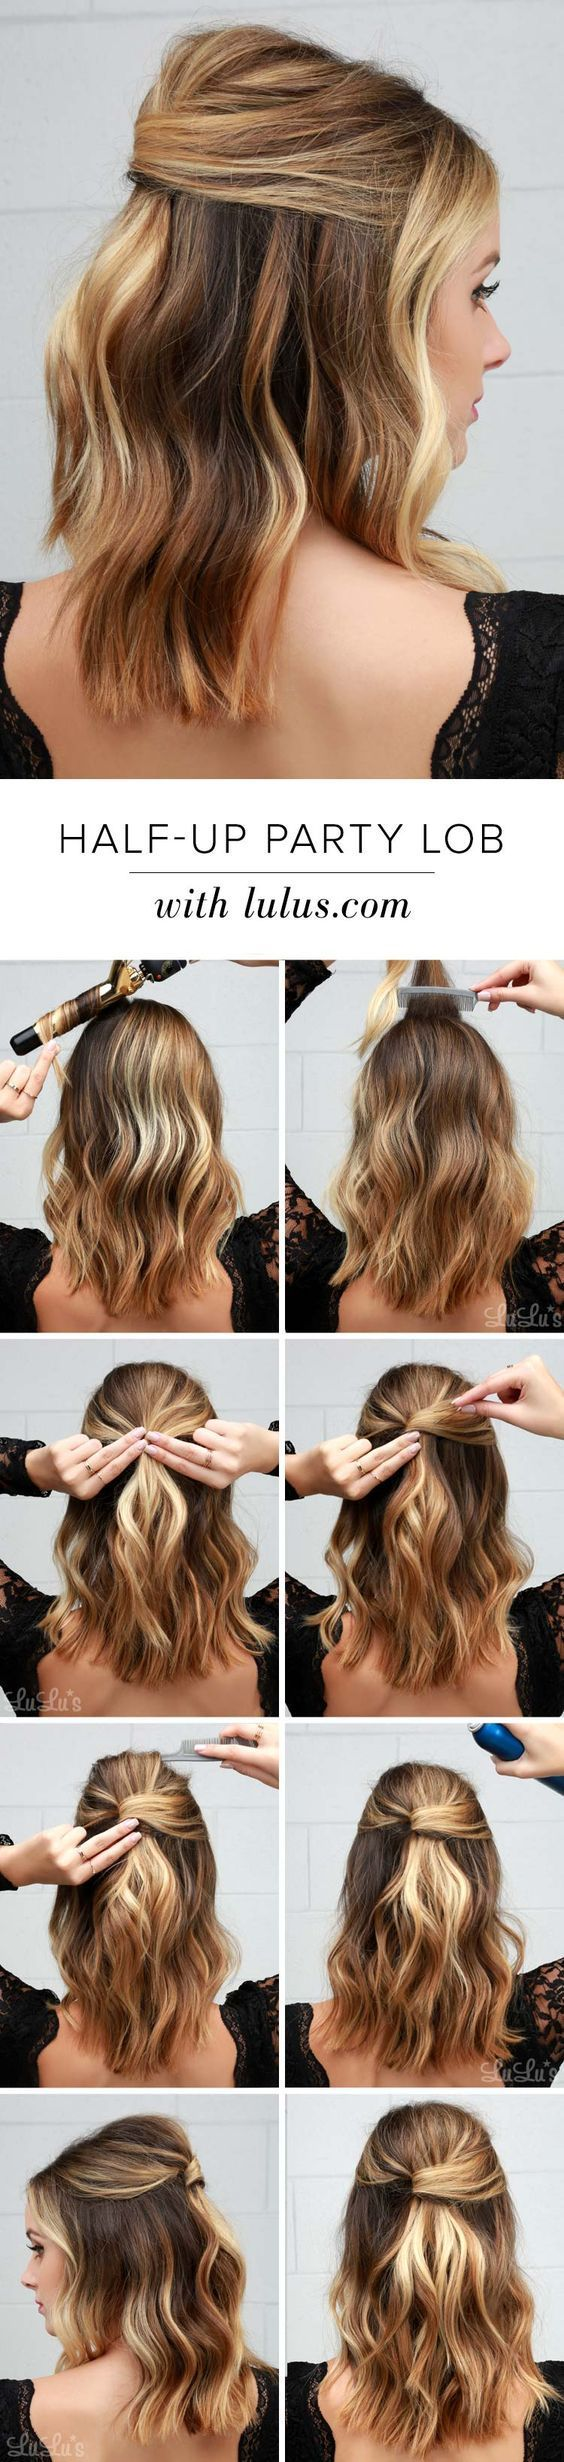 15 Hairstyles to Style Lobs - Pretty Designs